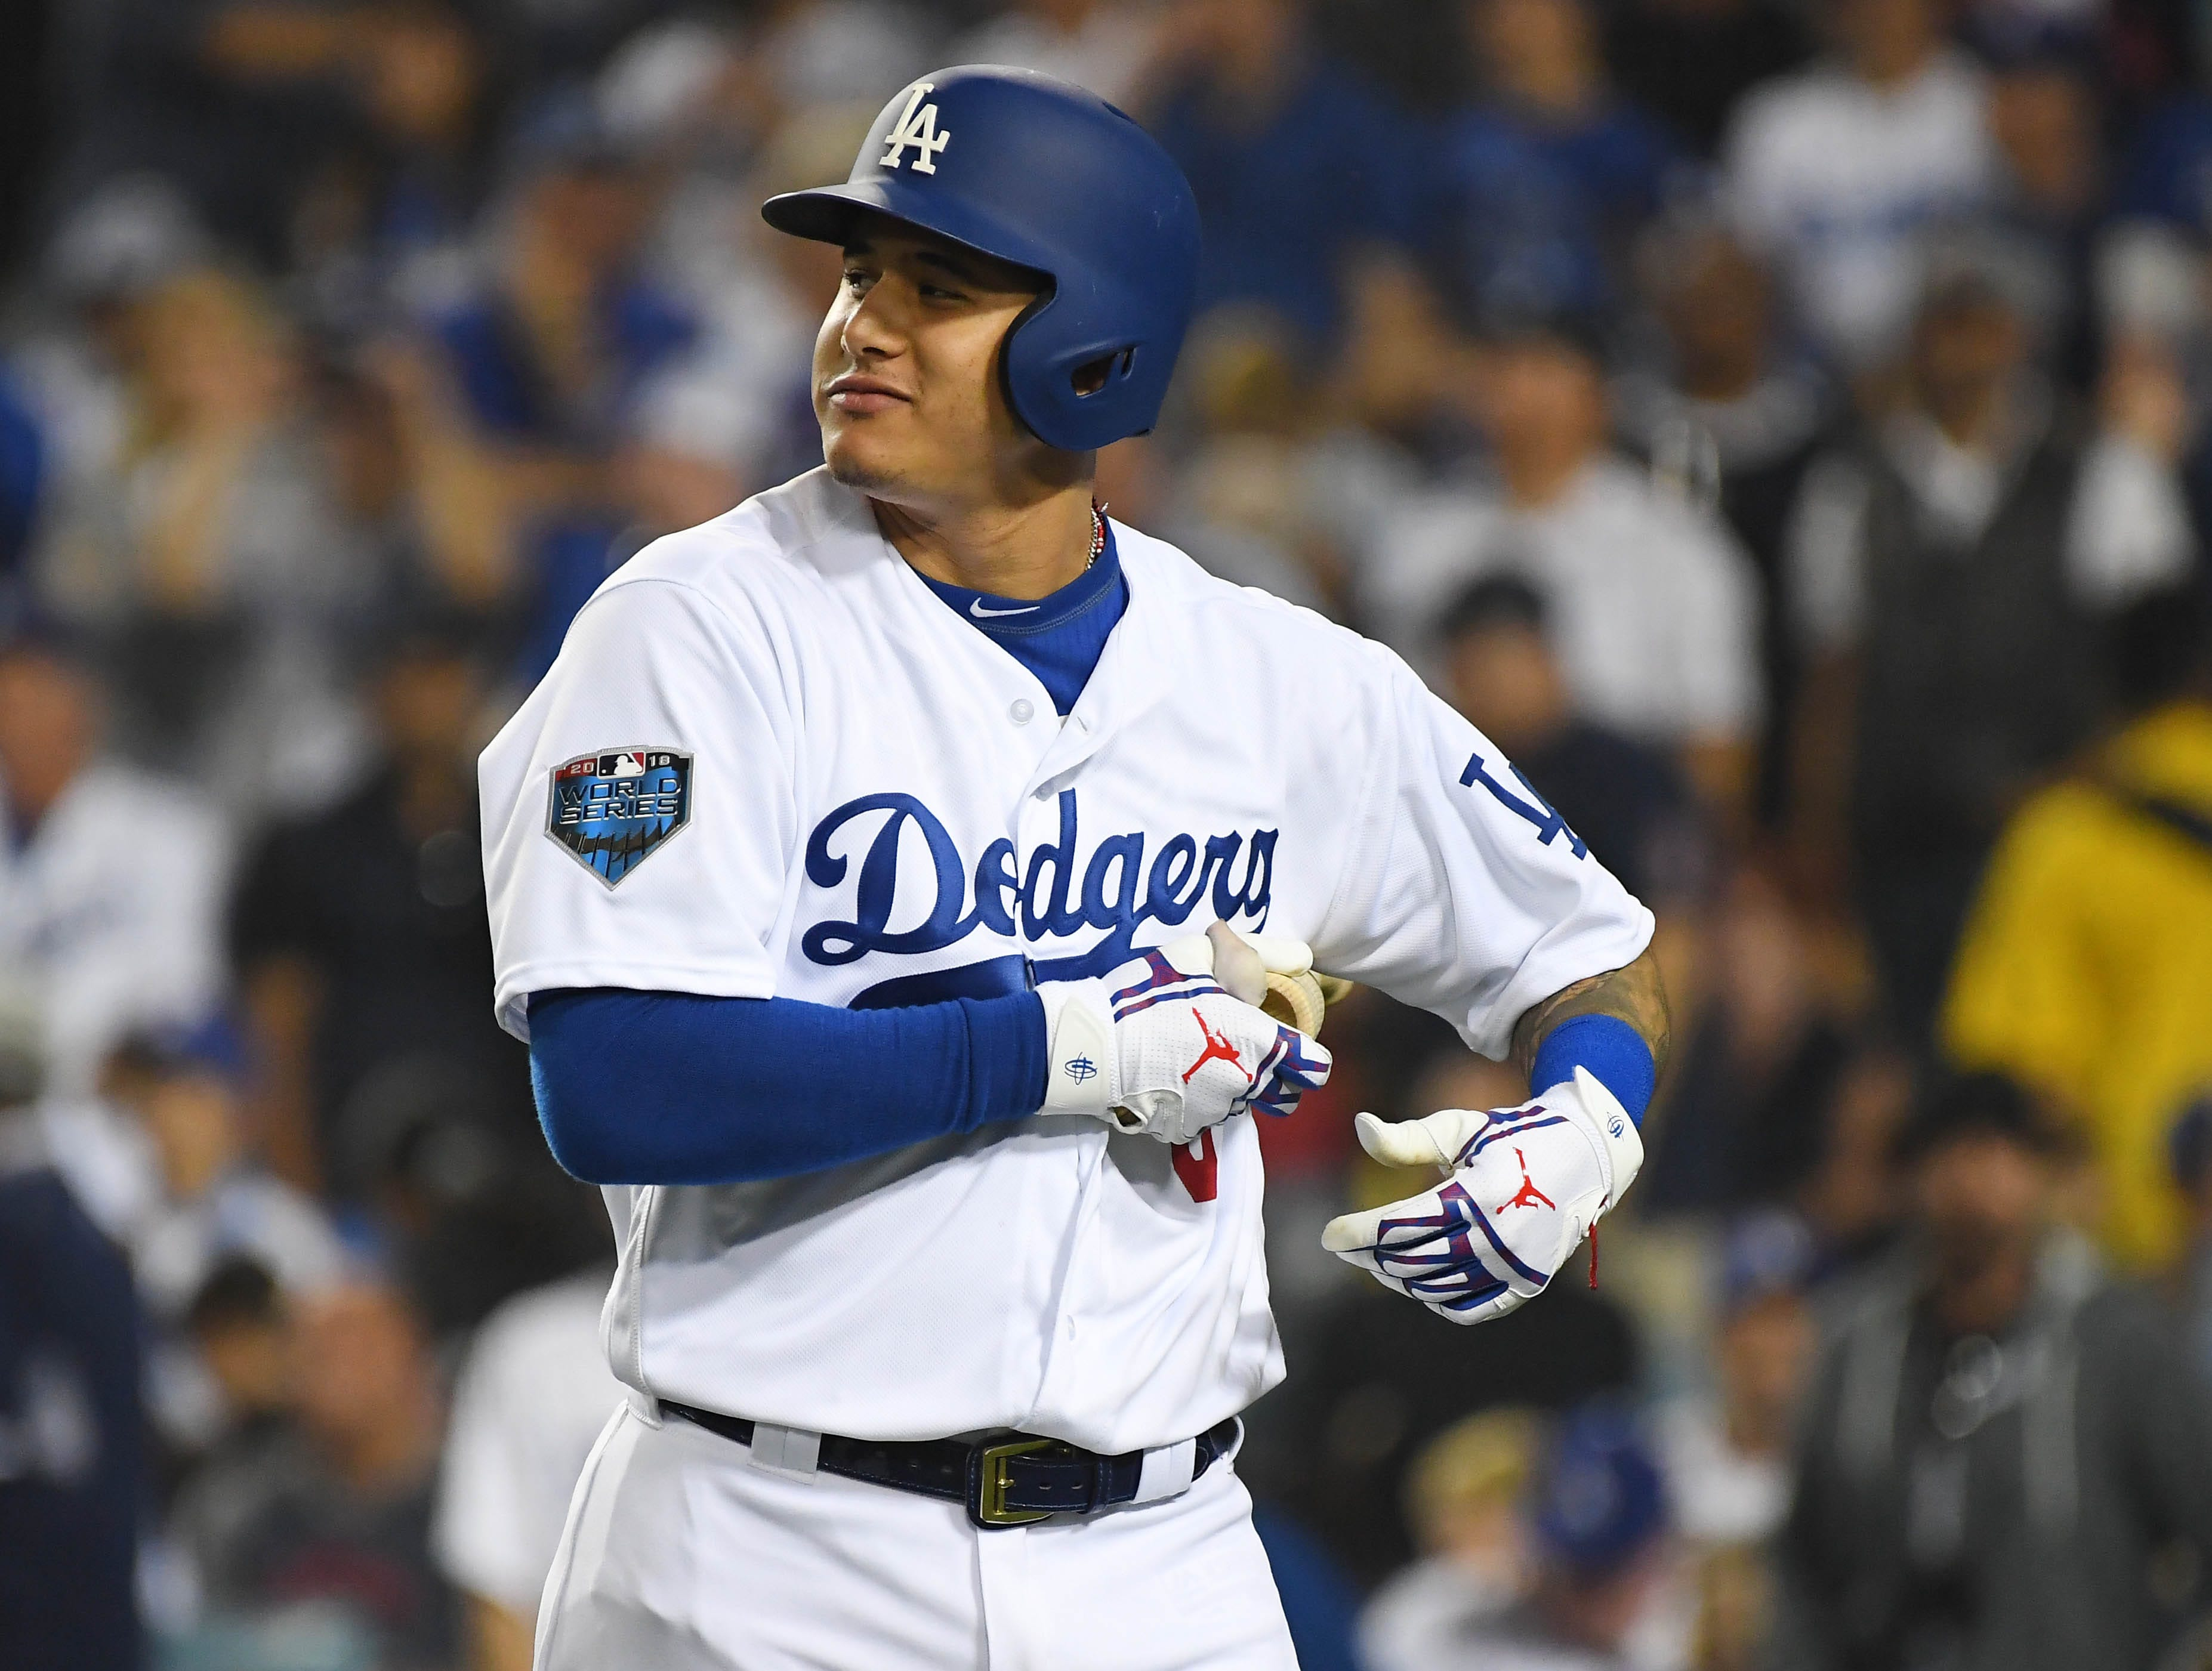 Game 4 at Dodger Stadium: Manny Machado reacts after striking out in the fourth inning.